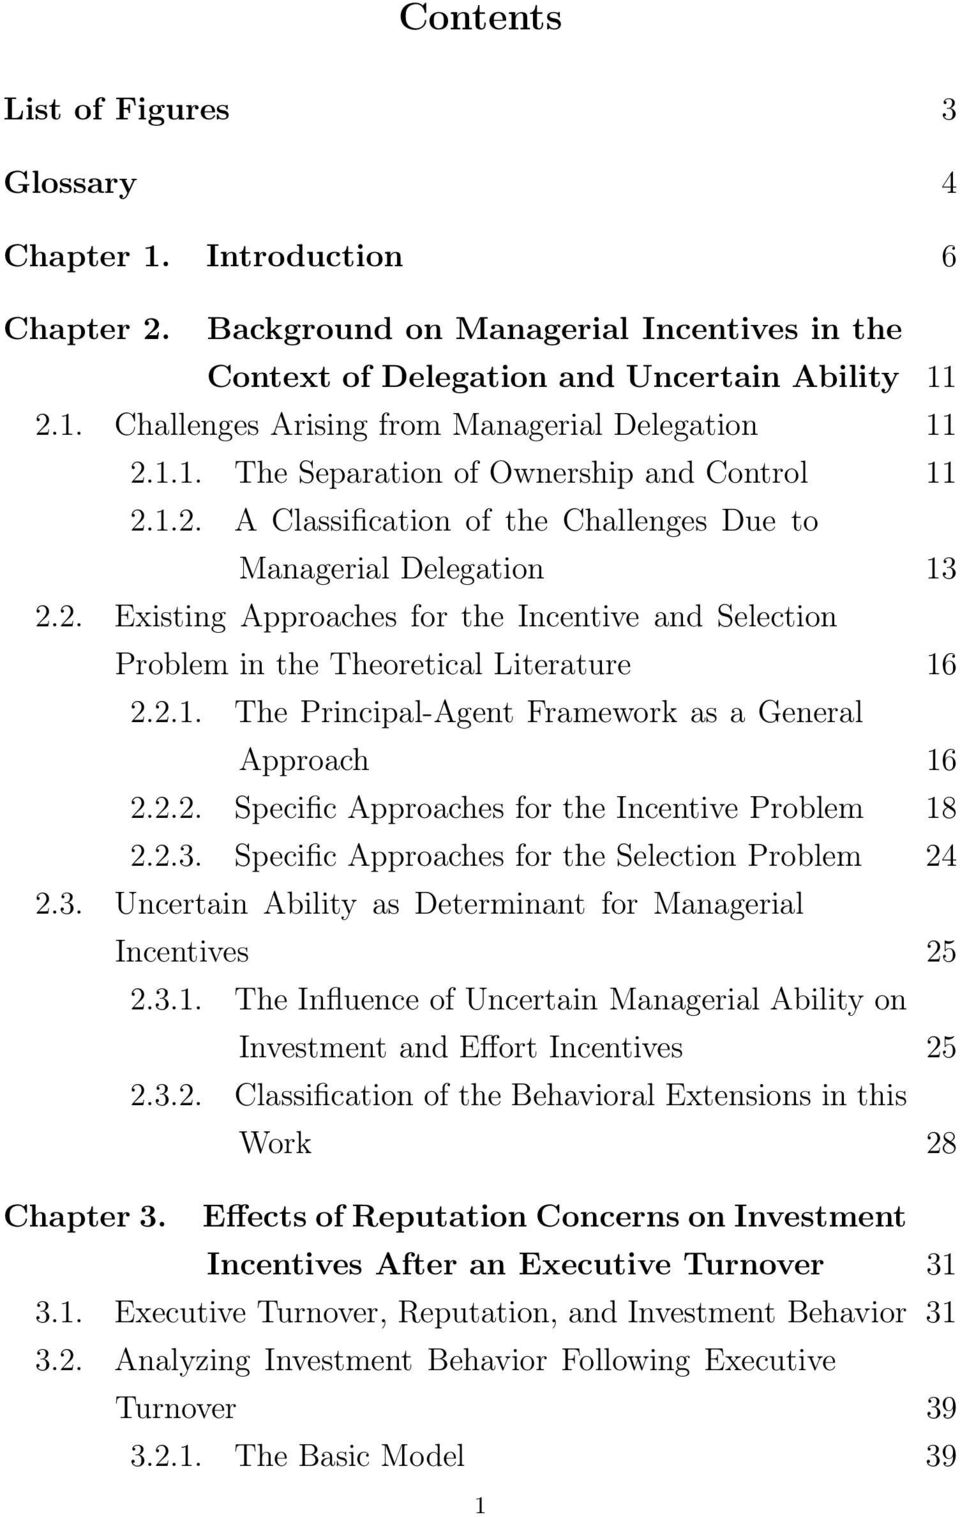 2.1. The Principal-Agent Framework as a General Approach 16 2.2.2. Specific Approaches for the Incentive Problem 18 2.2.3. Specific Approaches for the Selection Problem 24 2.3. Uncertain Ability as Determinant for Managerial Incentives 25 2.